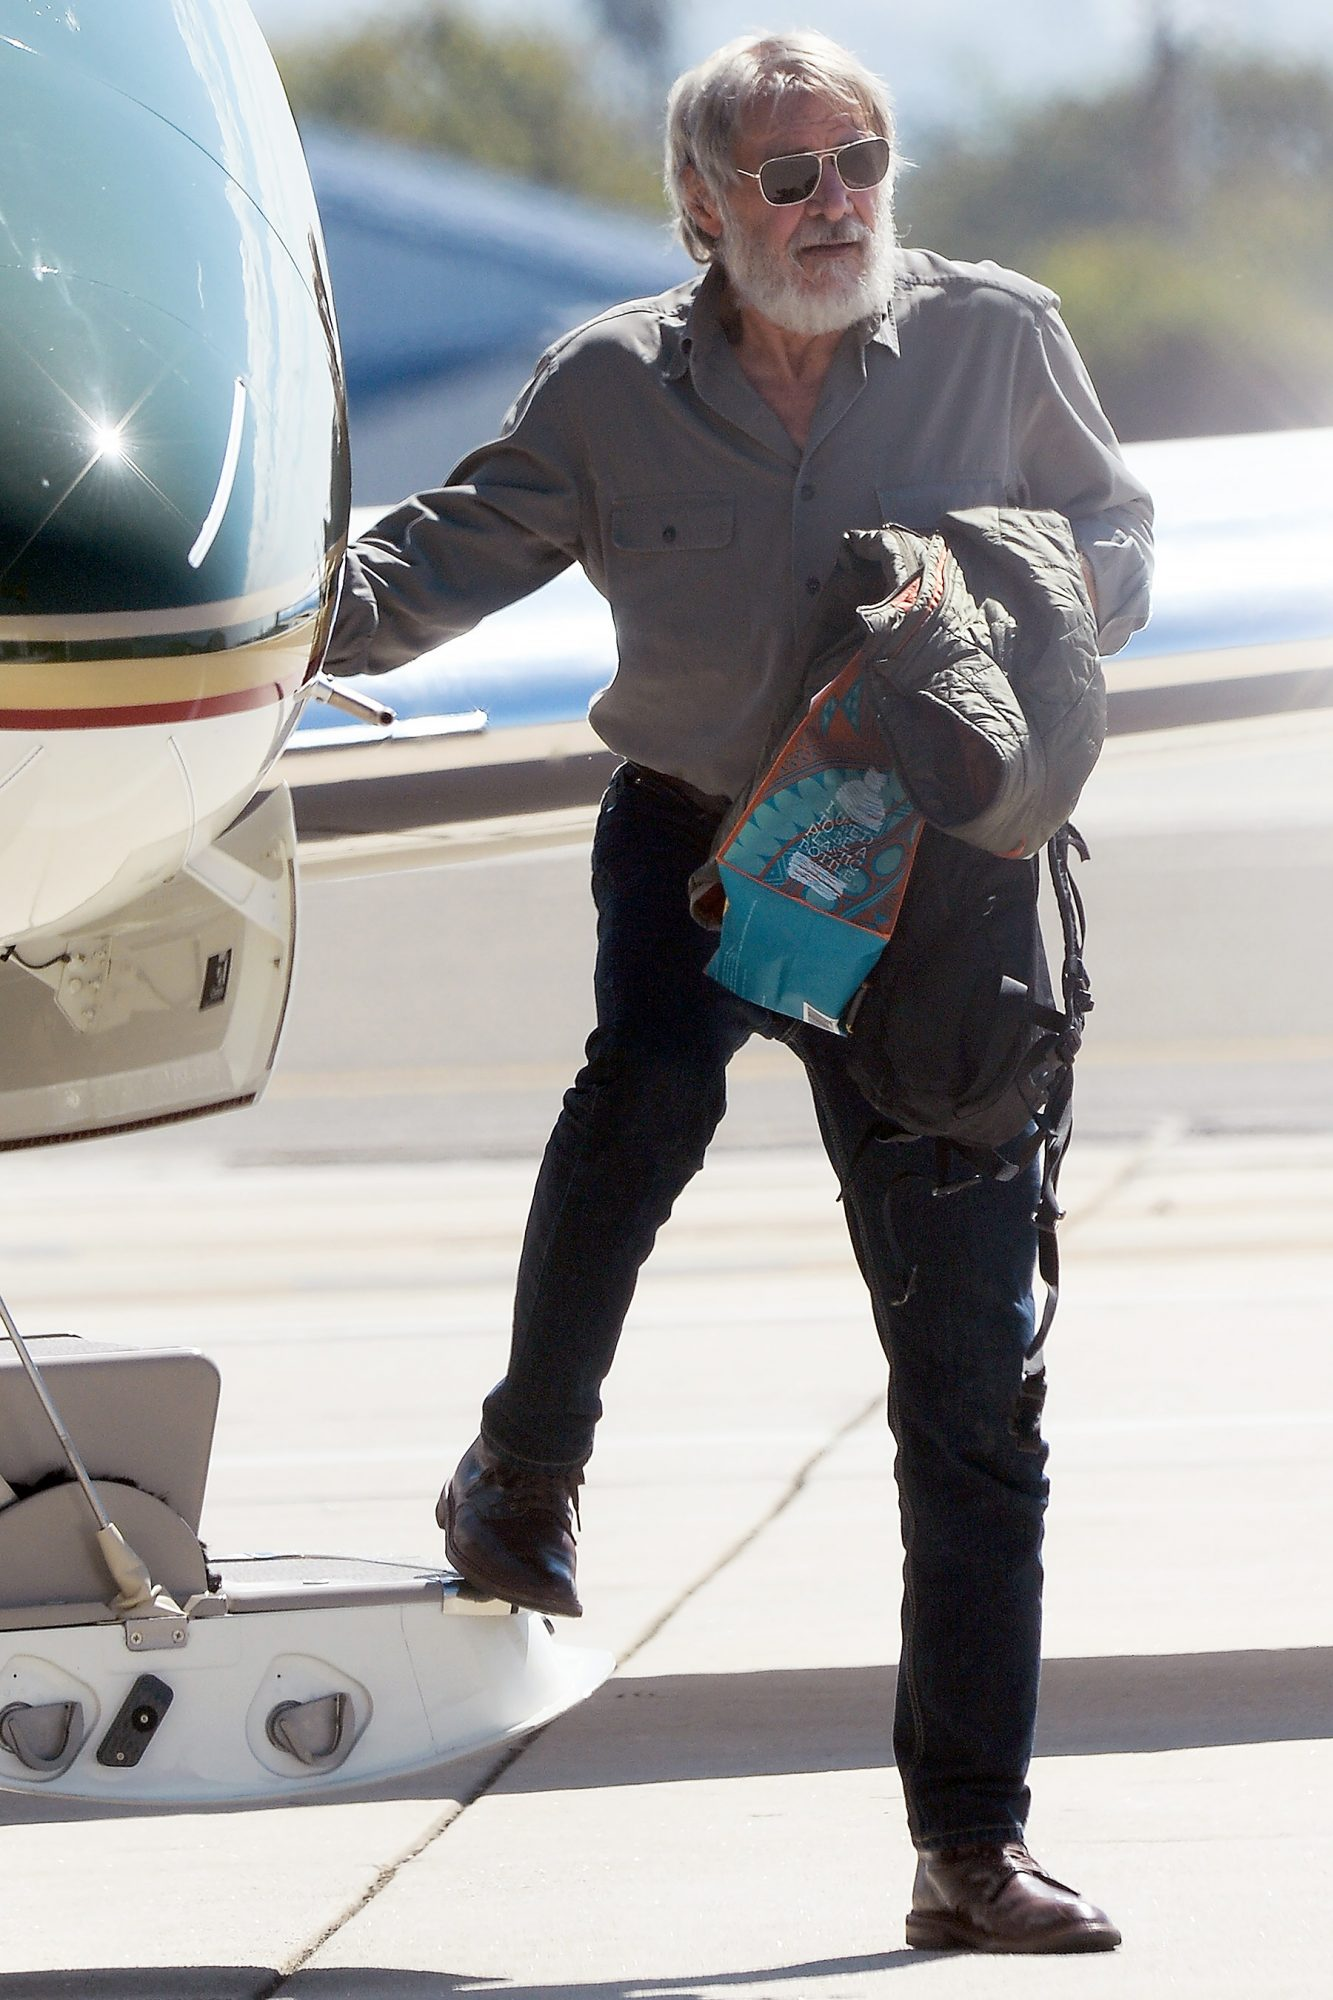 EXCLUSIVE: Harrison Ford Shows off His Bushy Beard as He Arrives in Los Angeles in a Private Jet that he Piloted.